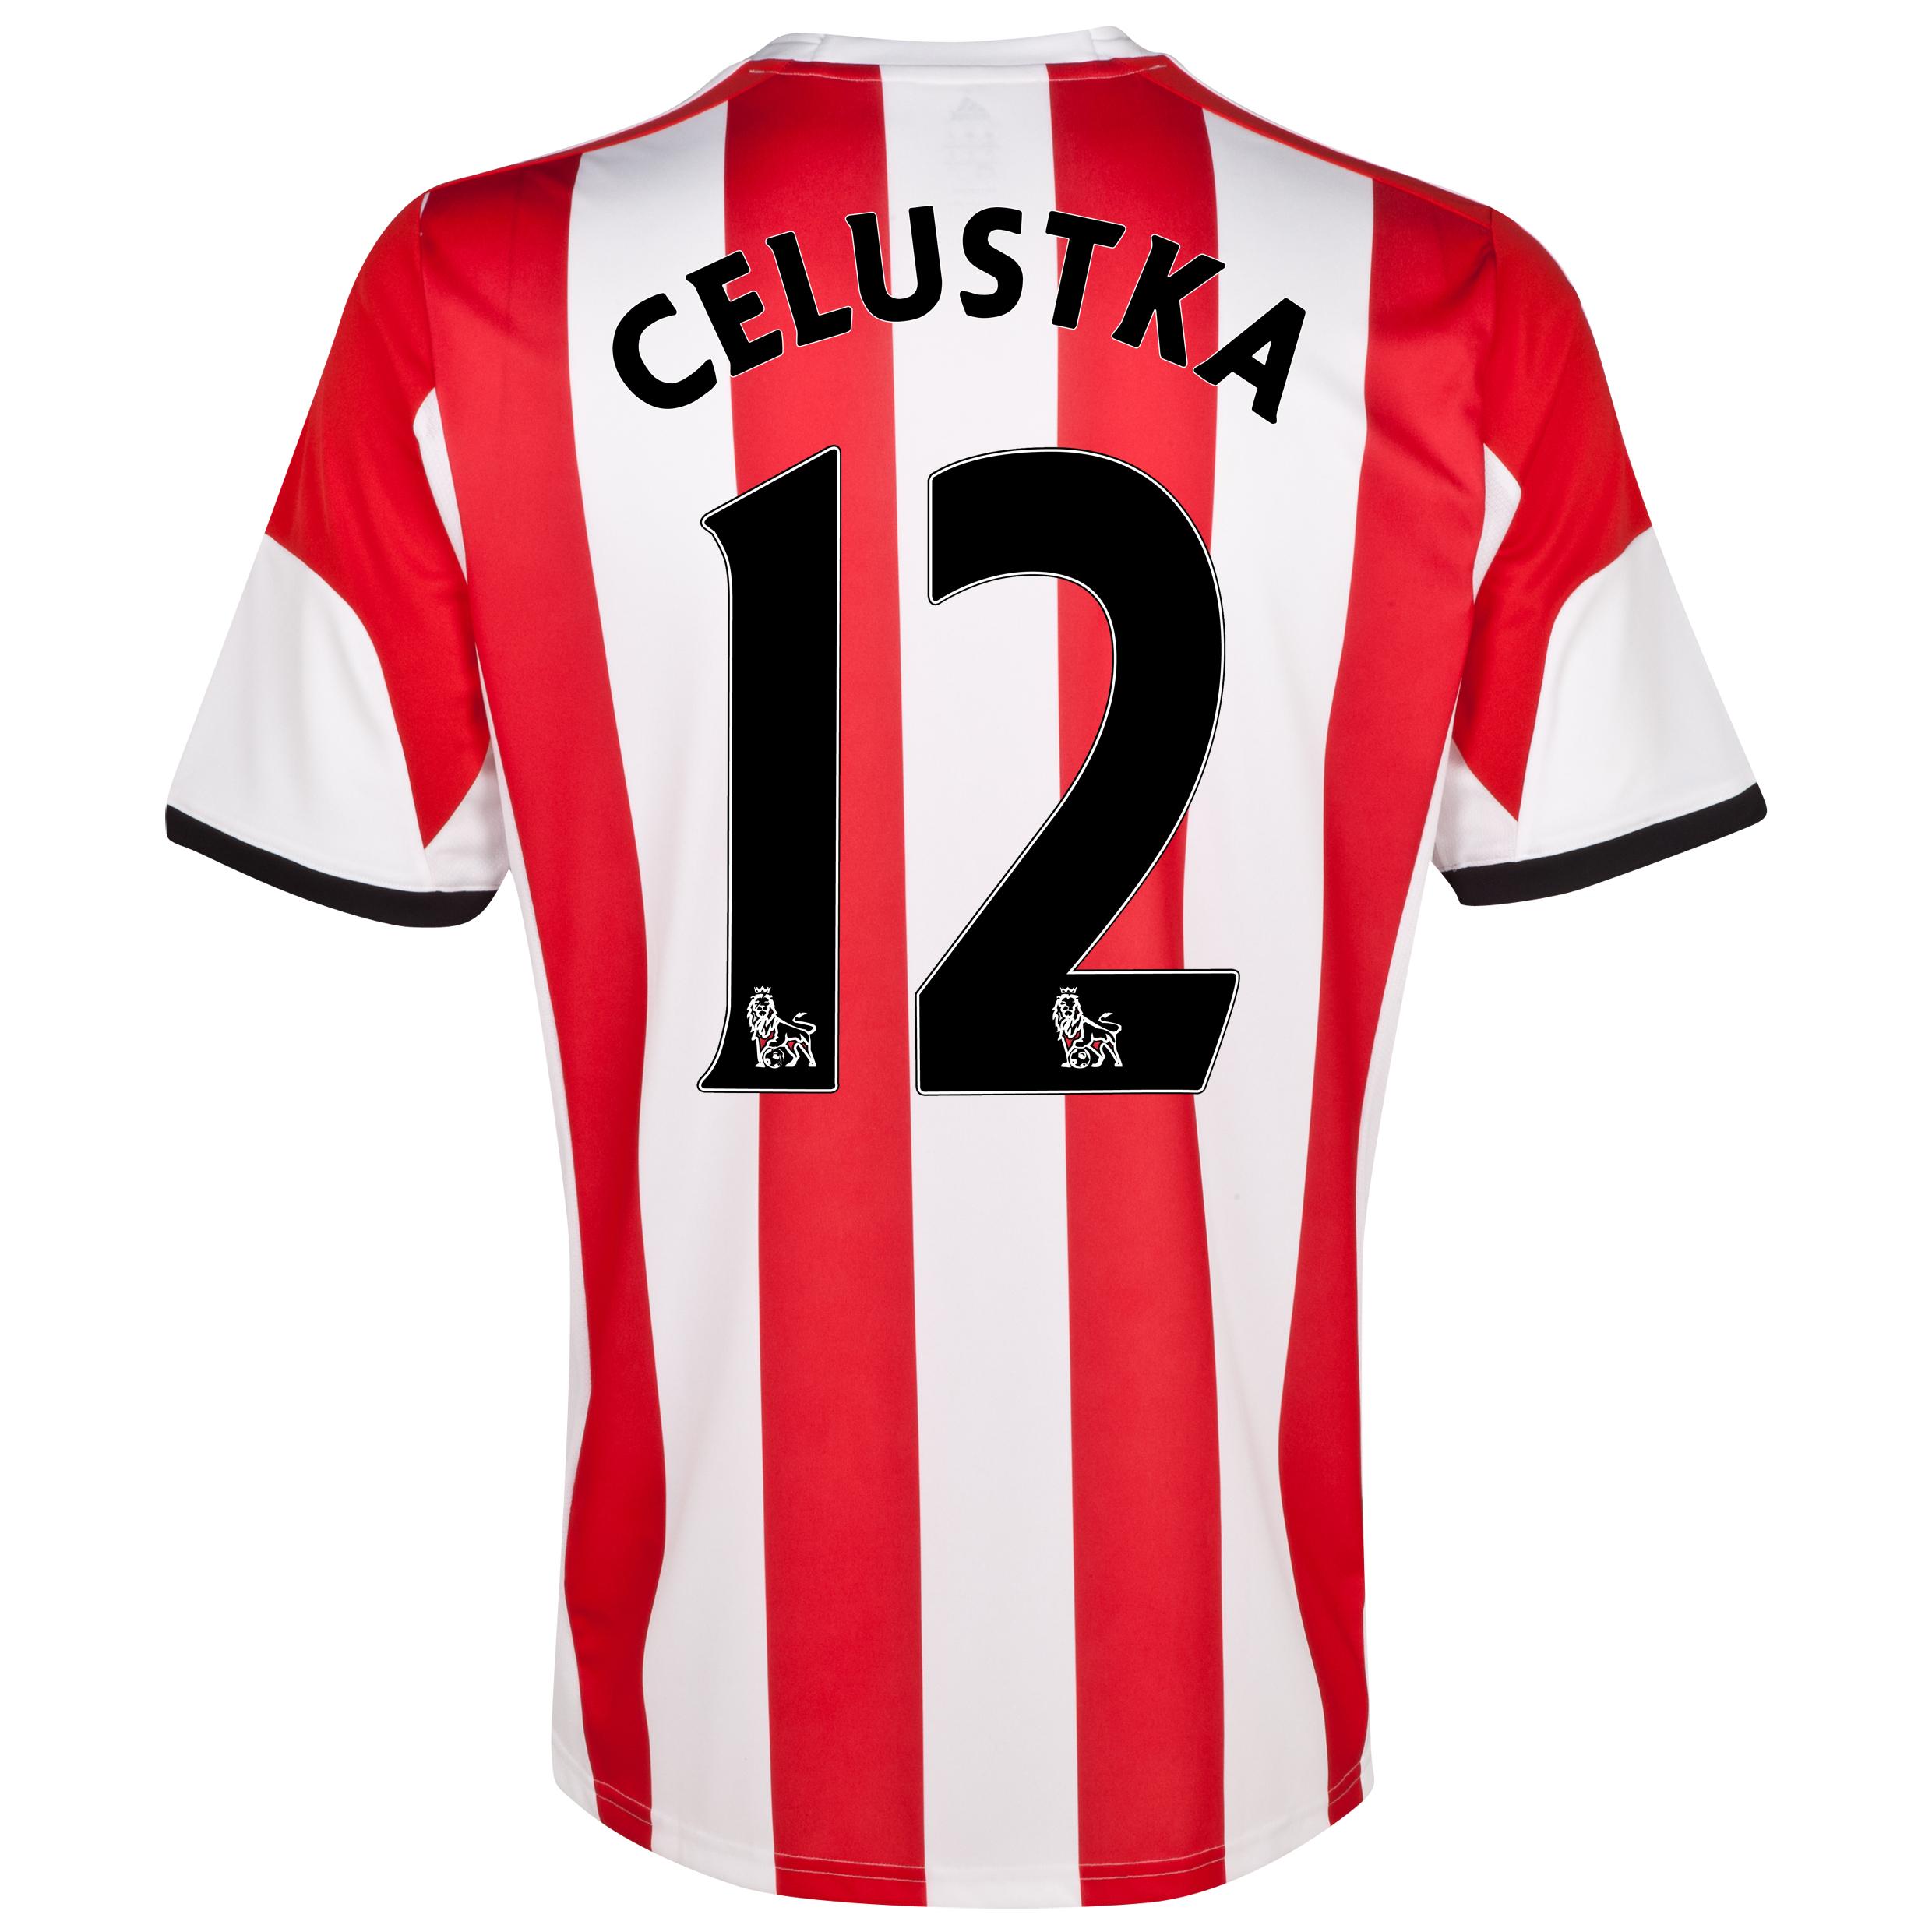 Sunderland Home Shirt 2013/14 with Celustka 12 printing